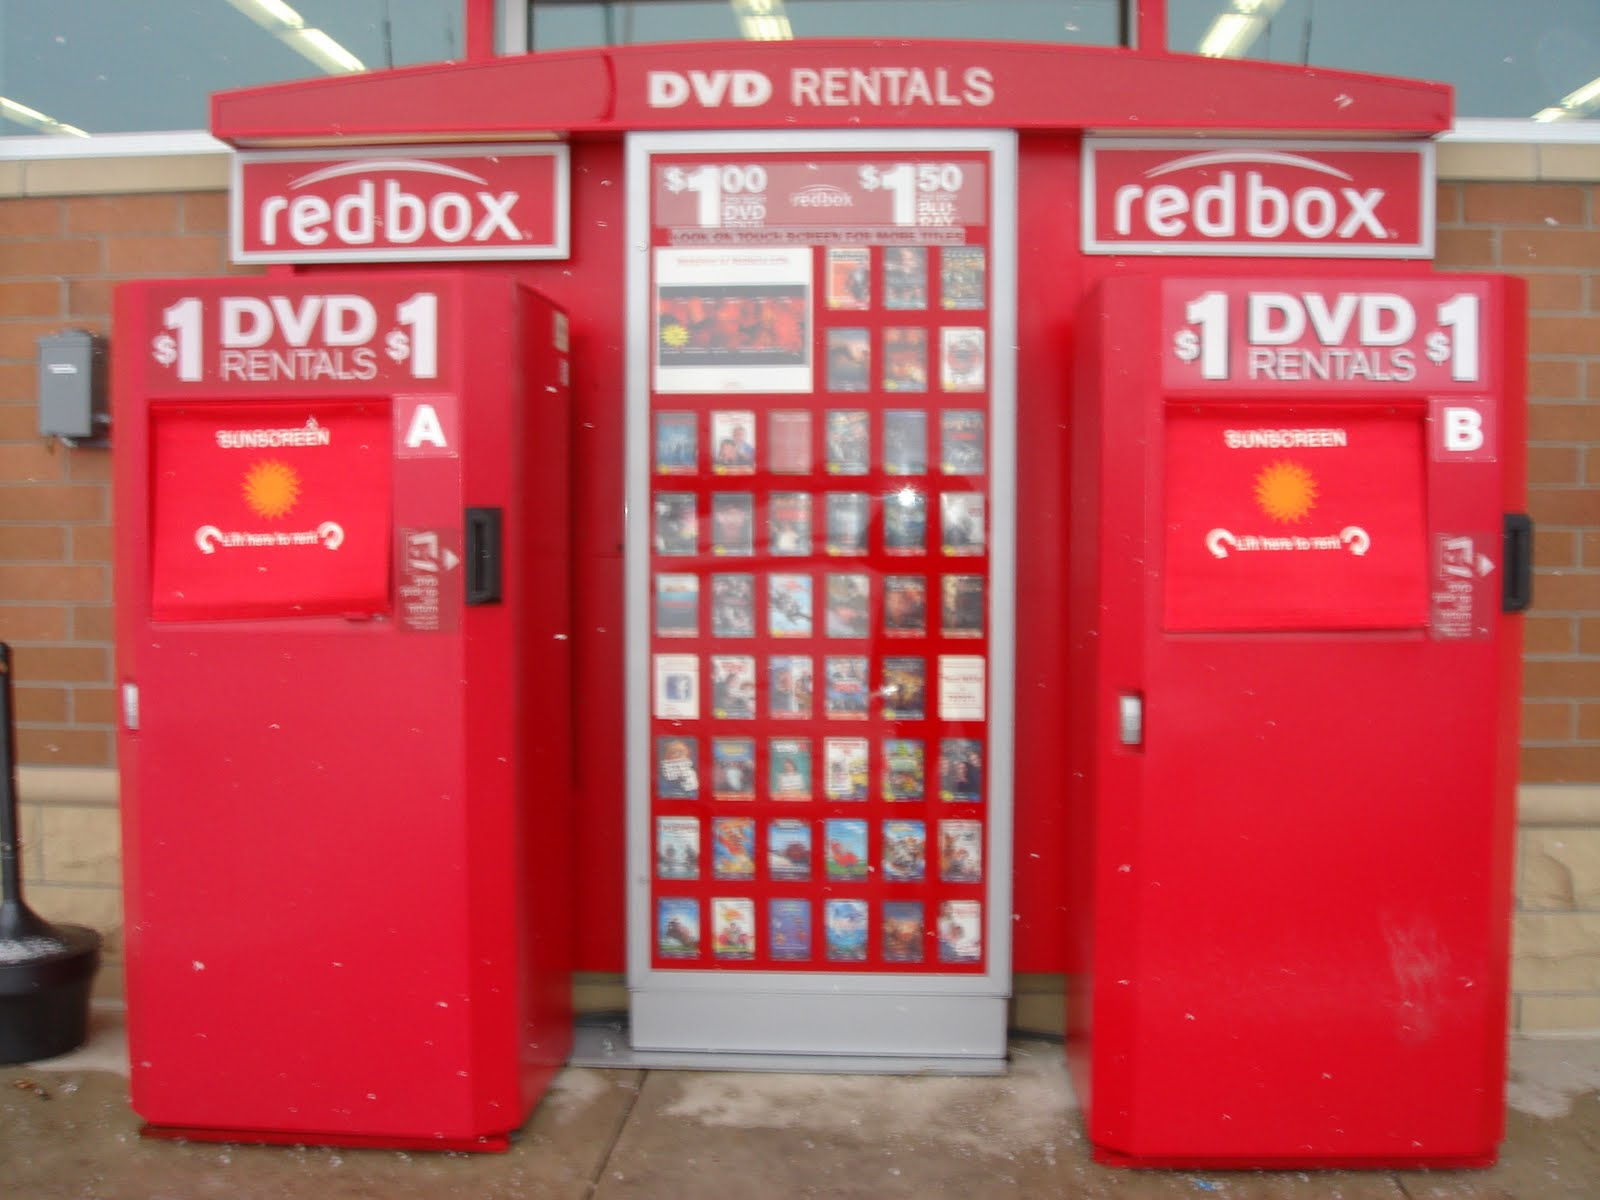 Nov 18,  · ‎Read reviews, compare customer ratings, see screenshots, and learn more about Redbox – Rent, Watch, Play. Download Redbox – Rent, Watch, Play and enjoy it on your iPhone, iPad, and iPod touch. ‎Reserve the latest movies and games so they are ready for you to pick up at nearby Redbox locations. You can also use the app to stream and /5(K).